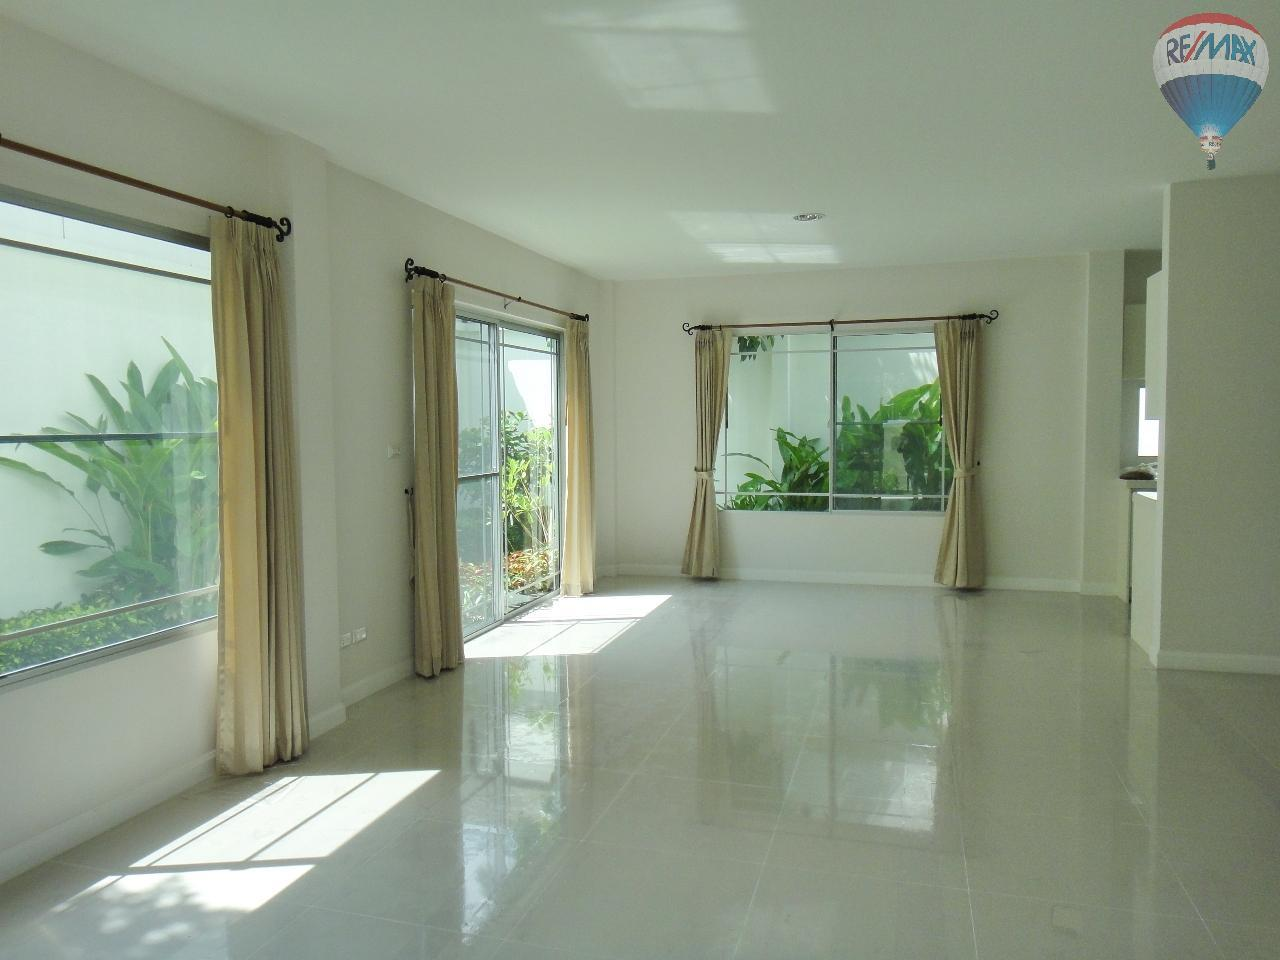 RE/MAX BestLife Agency's Nantawan Srinakarin Land and House for sale 3 bedroom 3 bathroom 64 sq.wah 168 sqm. 4